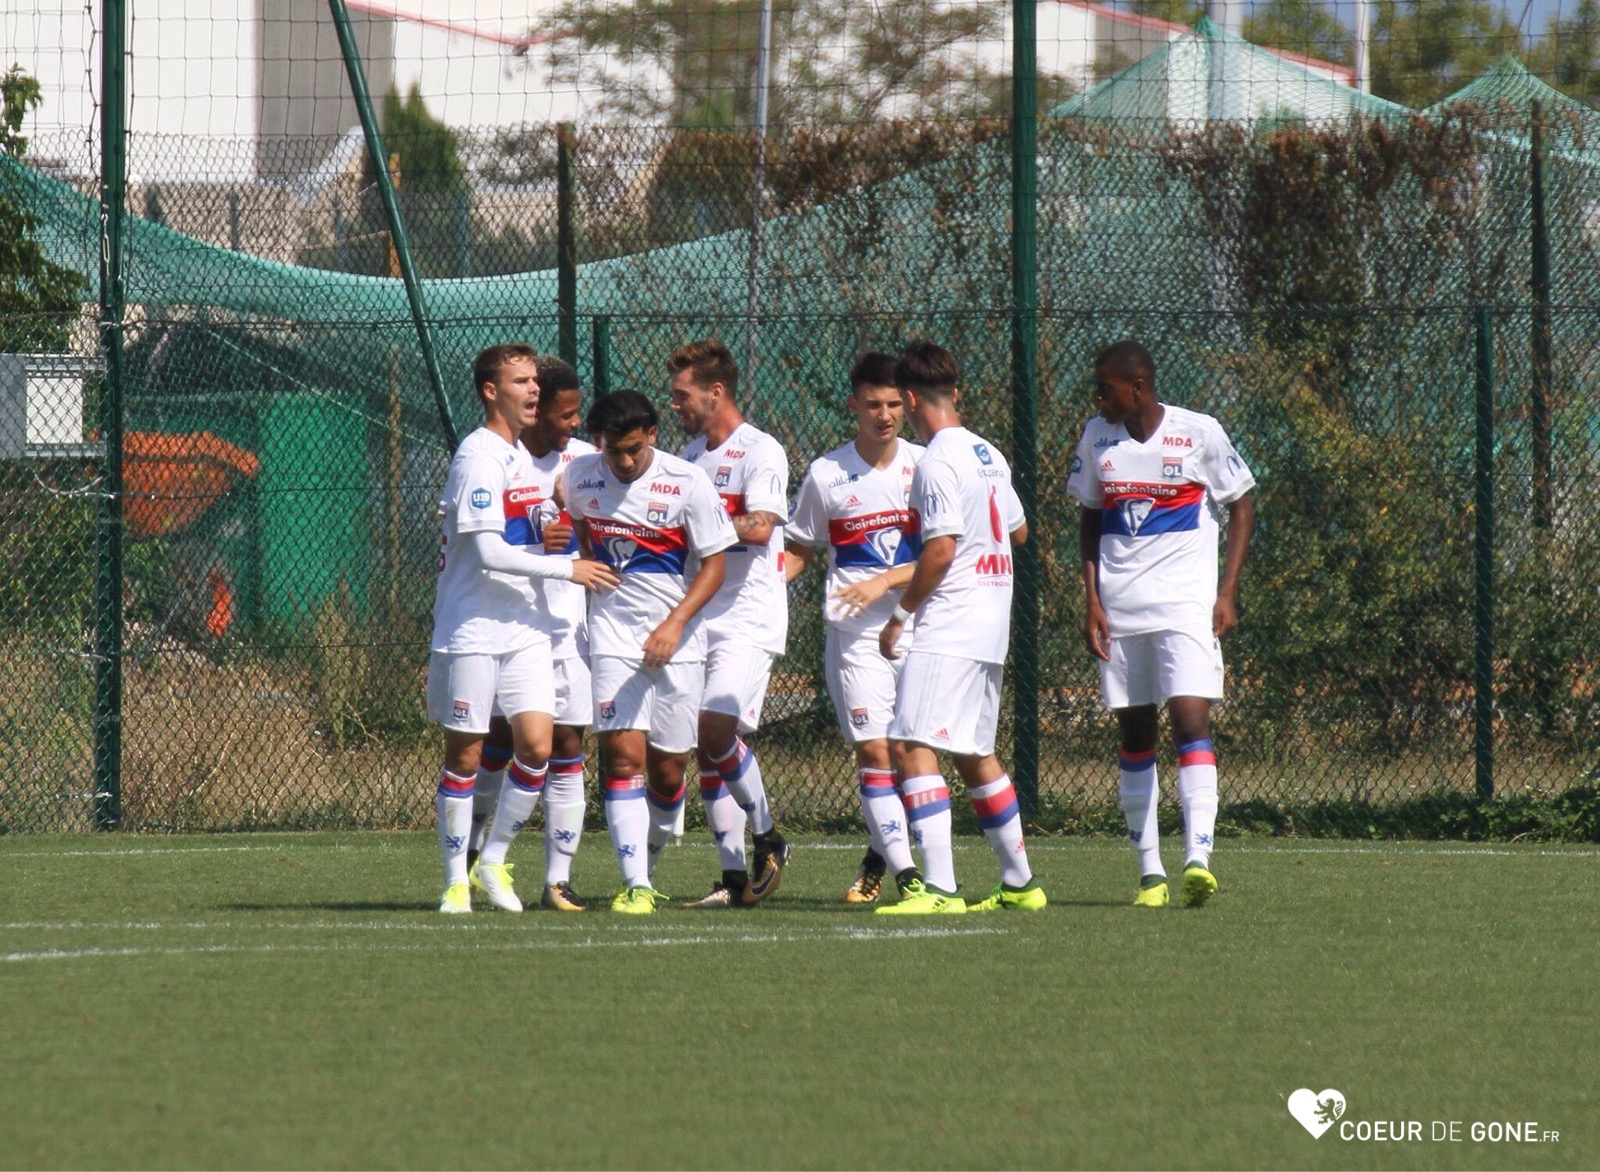 [Photos] Les U19 dominent l'AS Nancy-Lorraine (5-0)